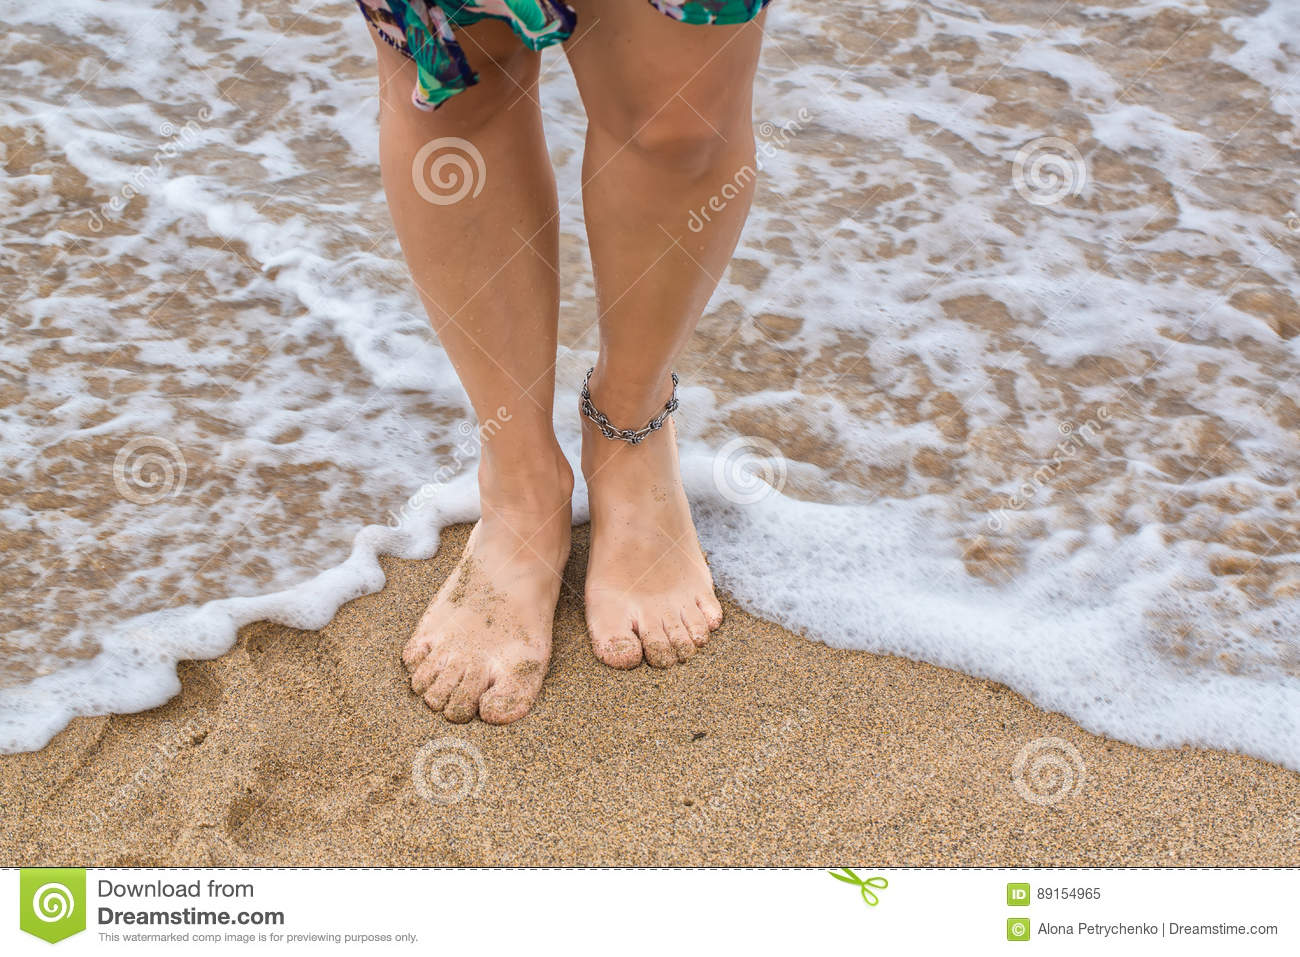 against womans with images white alamy female image photo anklet floor woman stock s feet photos